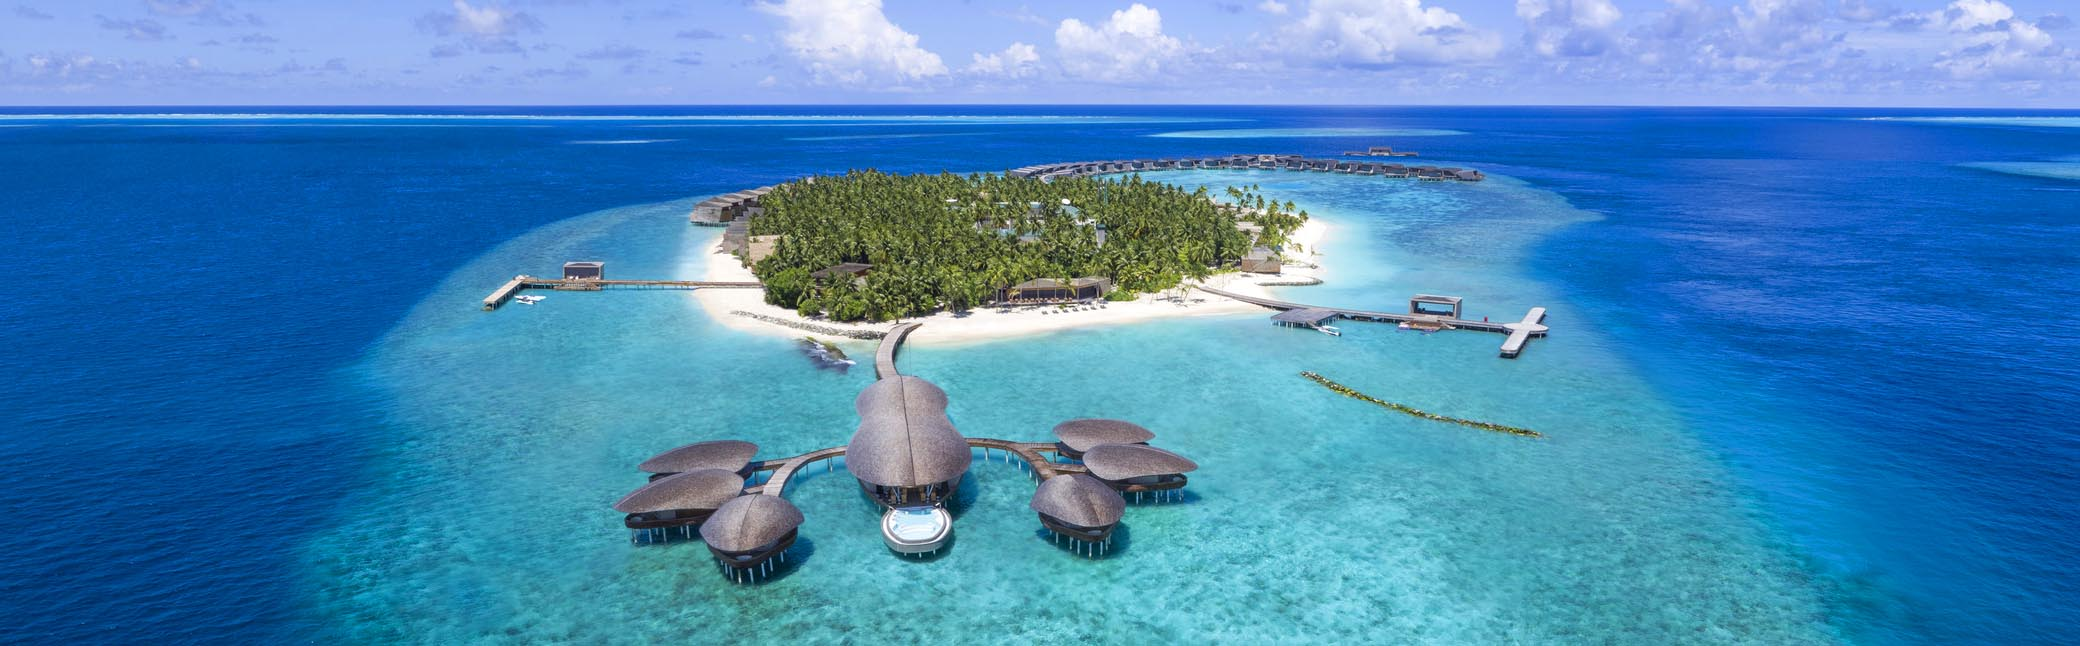 Maldives Luxury Resorts by LUXUR HOLIDAYS